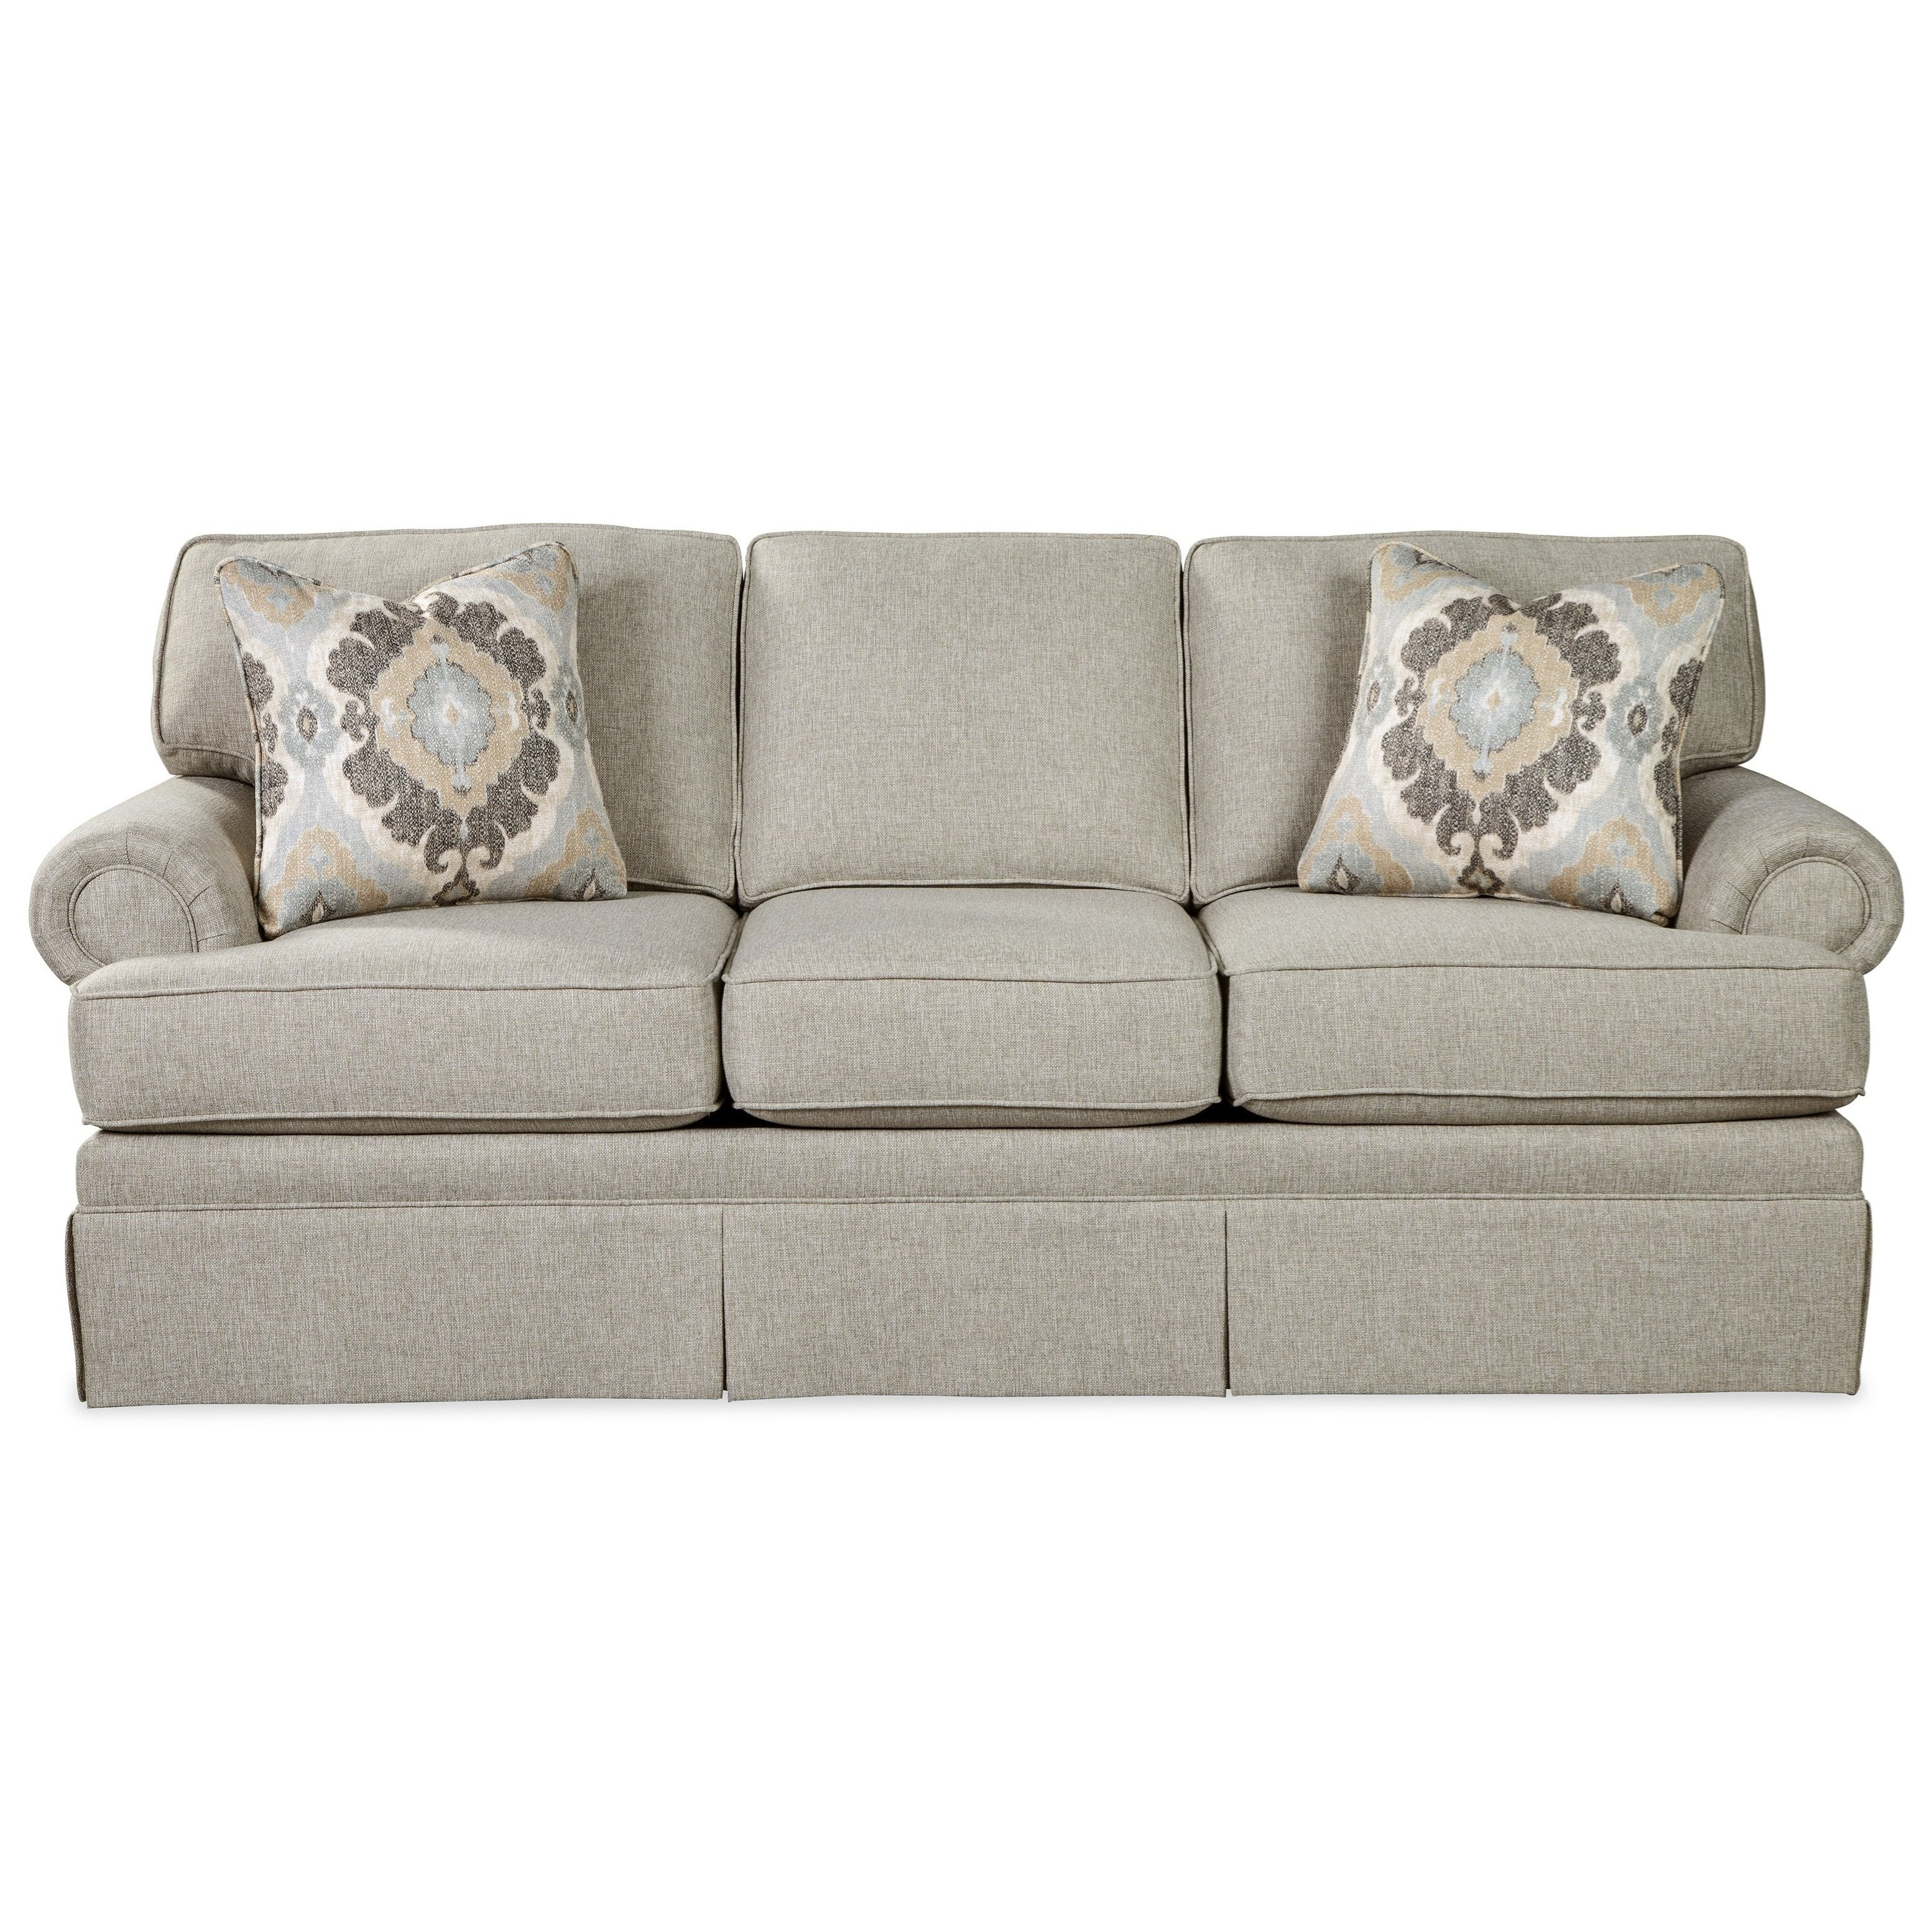 Sofa Foam Price In Delhi Craftmaster 981550 Traditional Skirted Sofa With Queen Sleeper